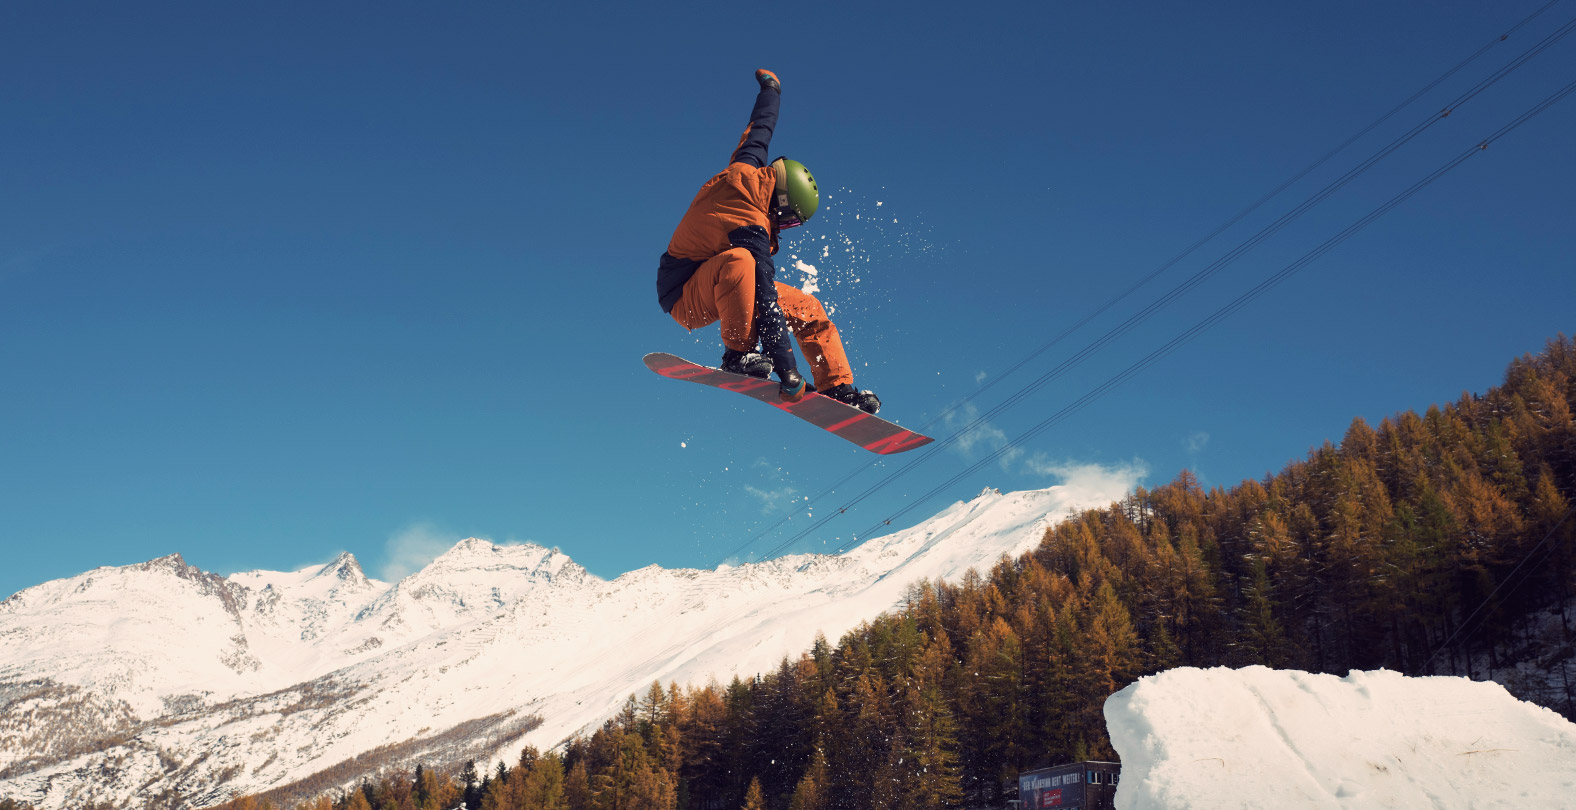 Snowboarder Gian Simmen with a BS 180 Indy